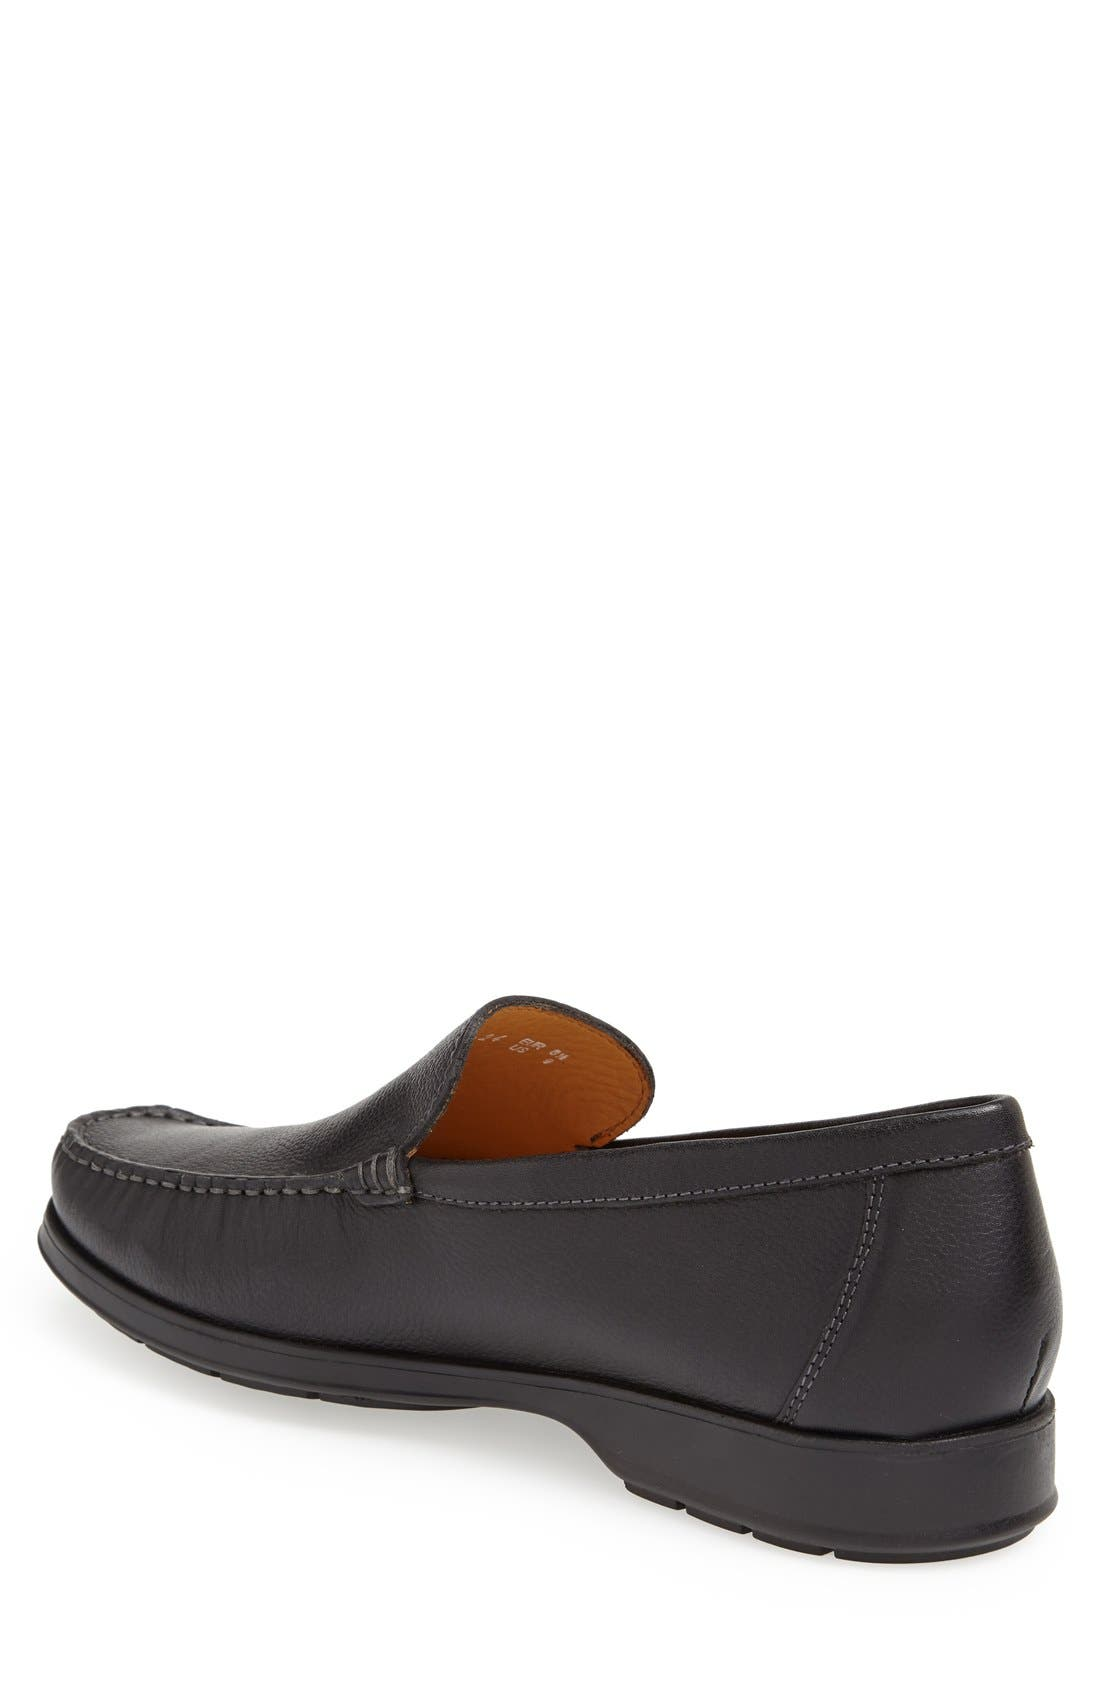 Alternate Image 2  - Mephisto 'Henri' Loafer (Men)